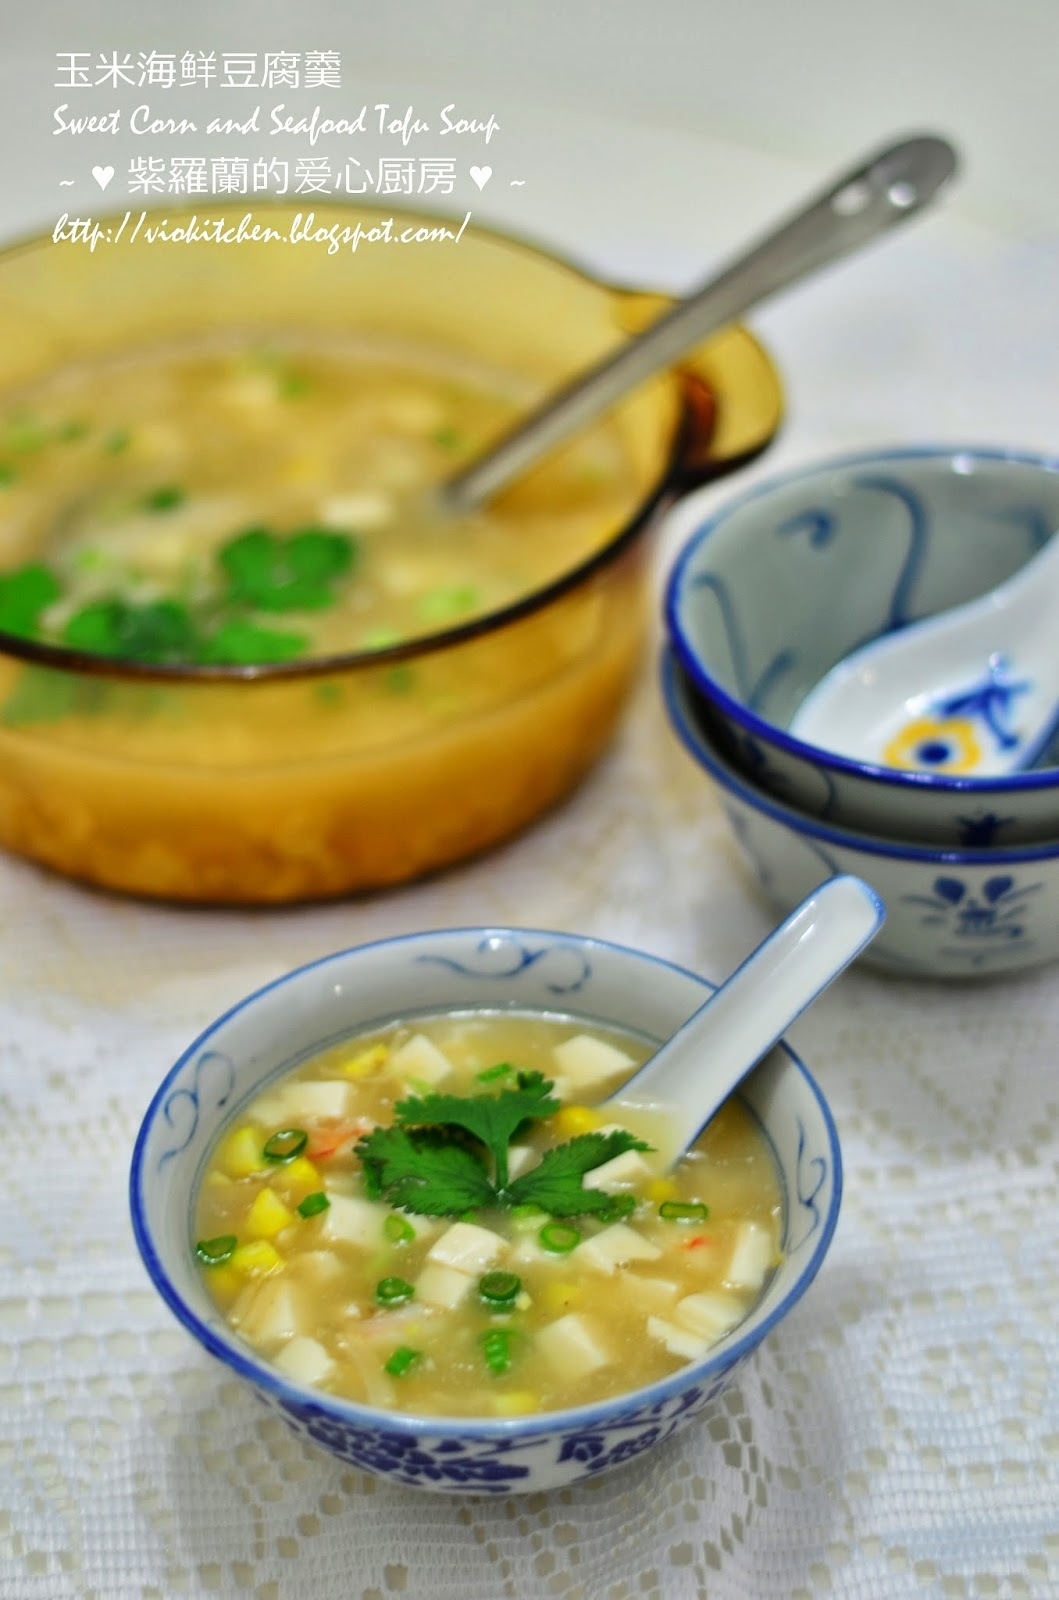 玉米海鲜豆腐羹 Sweet Corn and Seafood Tofu Soup